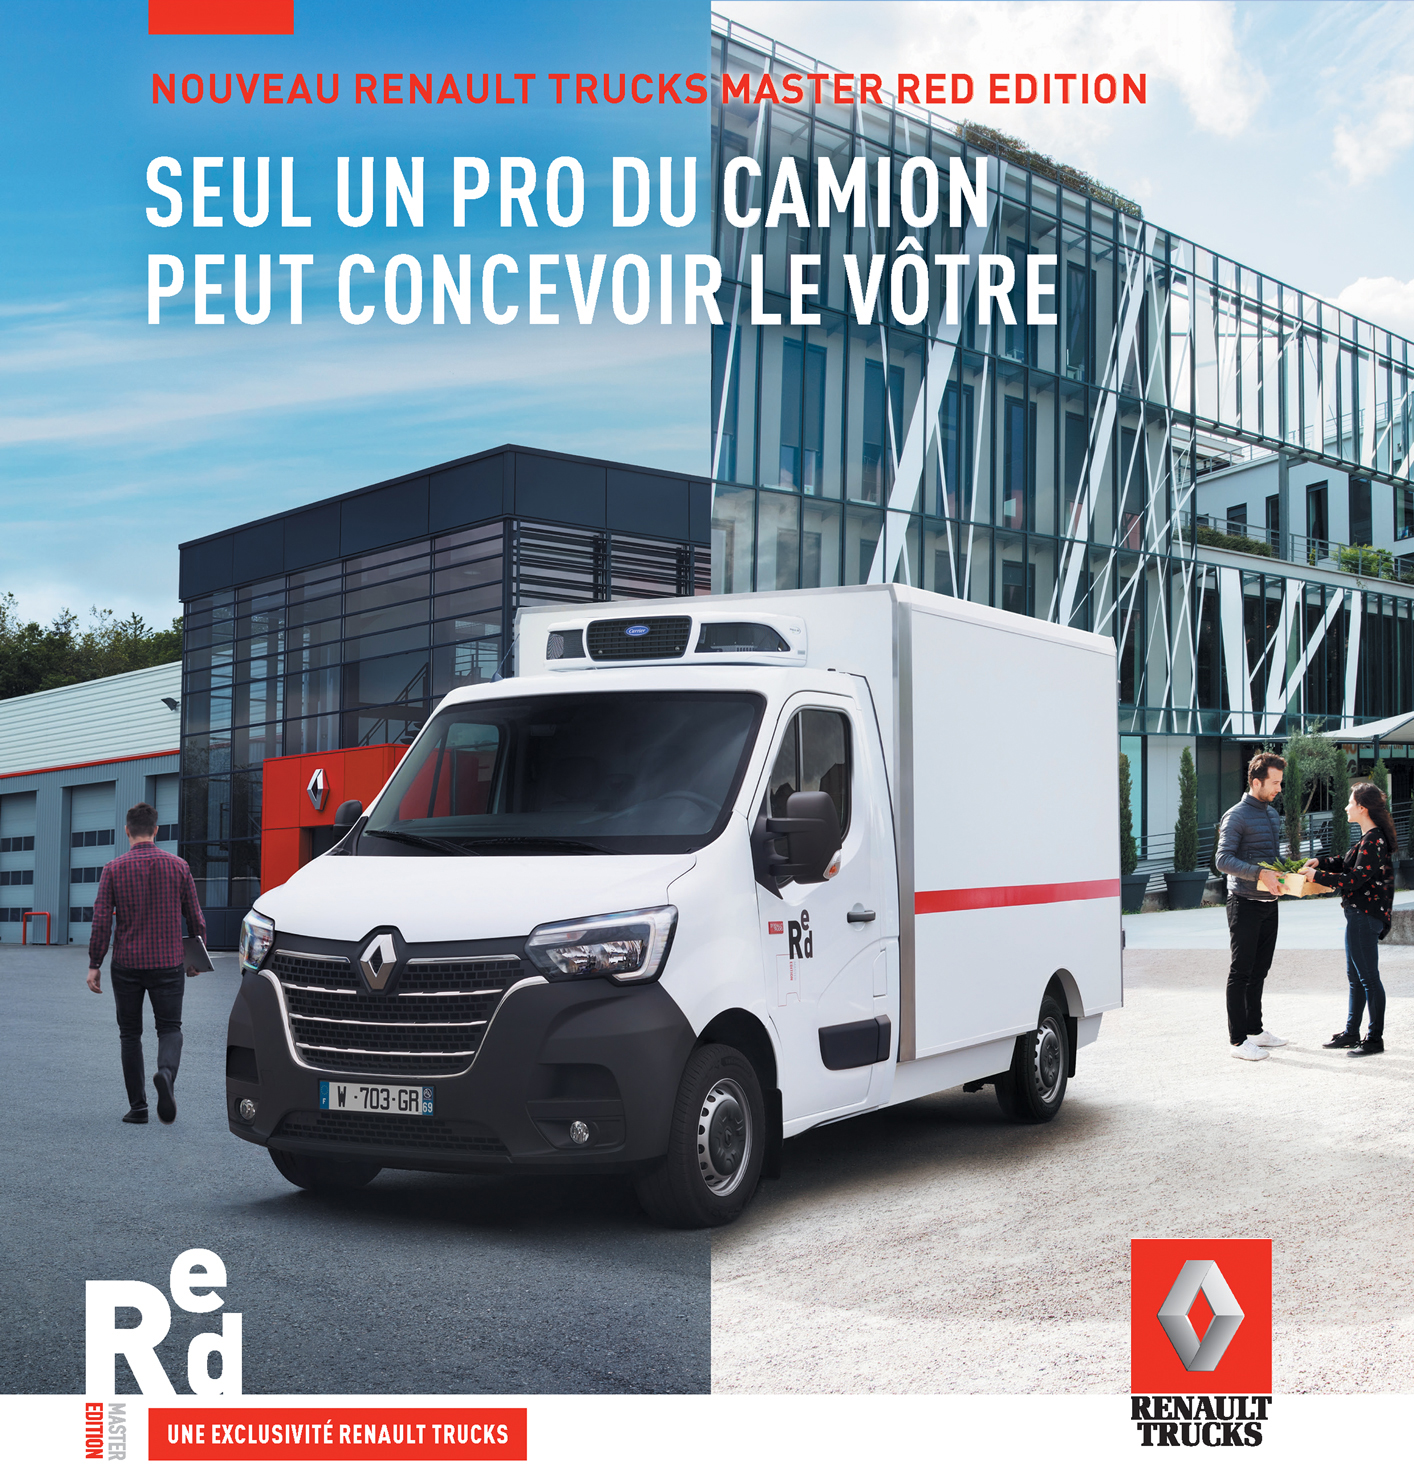 Renault - Master Red Trucks campaign